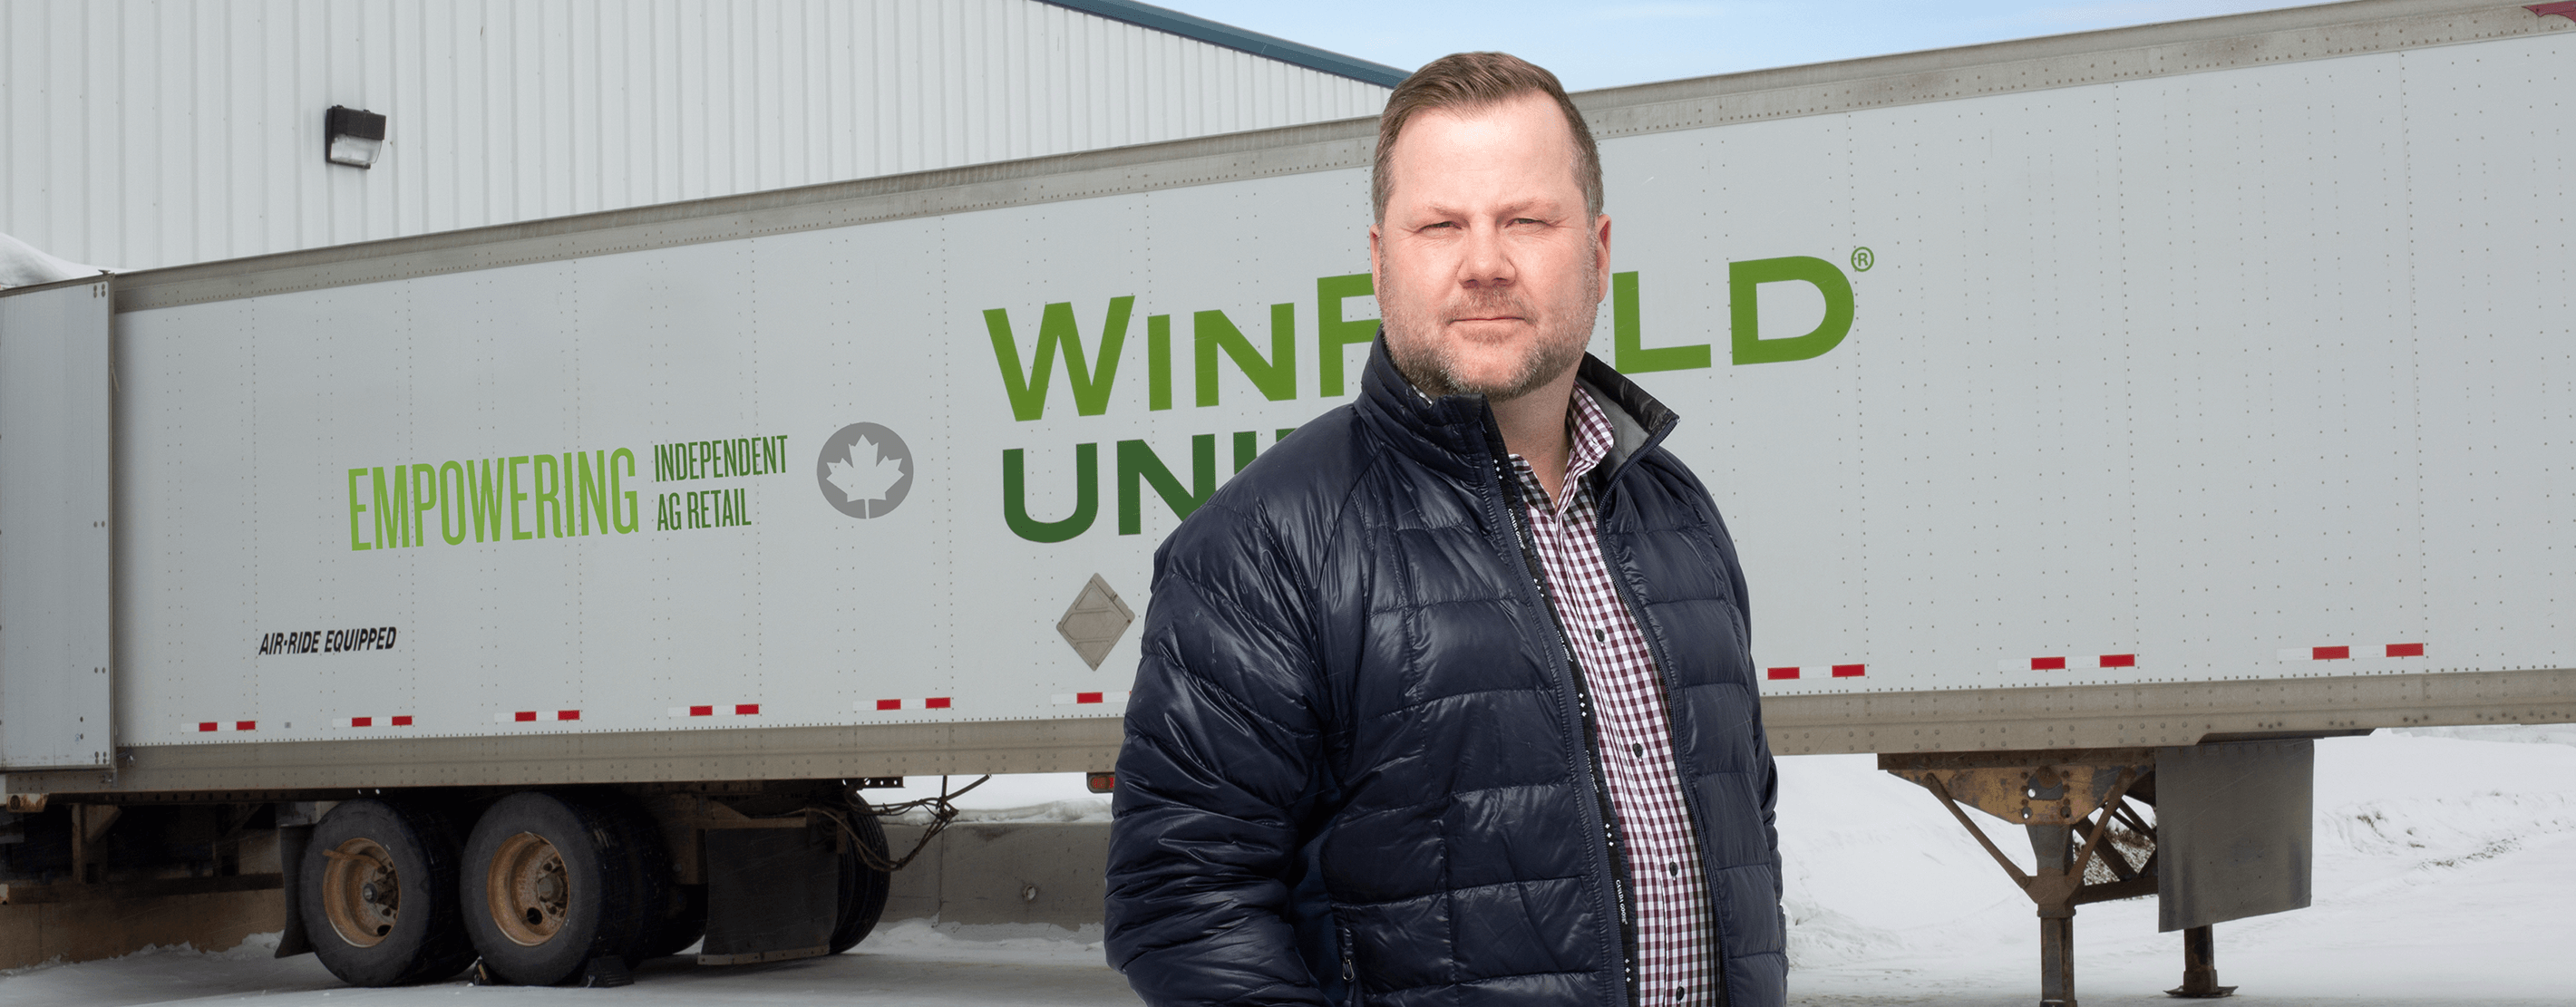 Greg McDonald Standing Next To A WinField United Truck